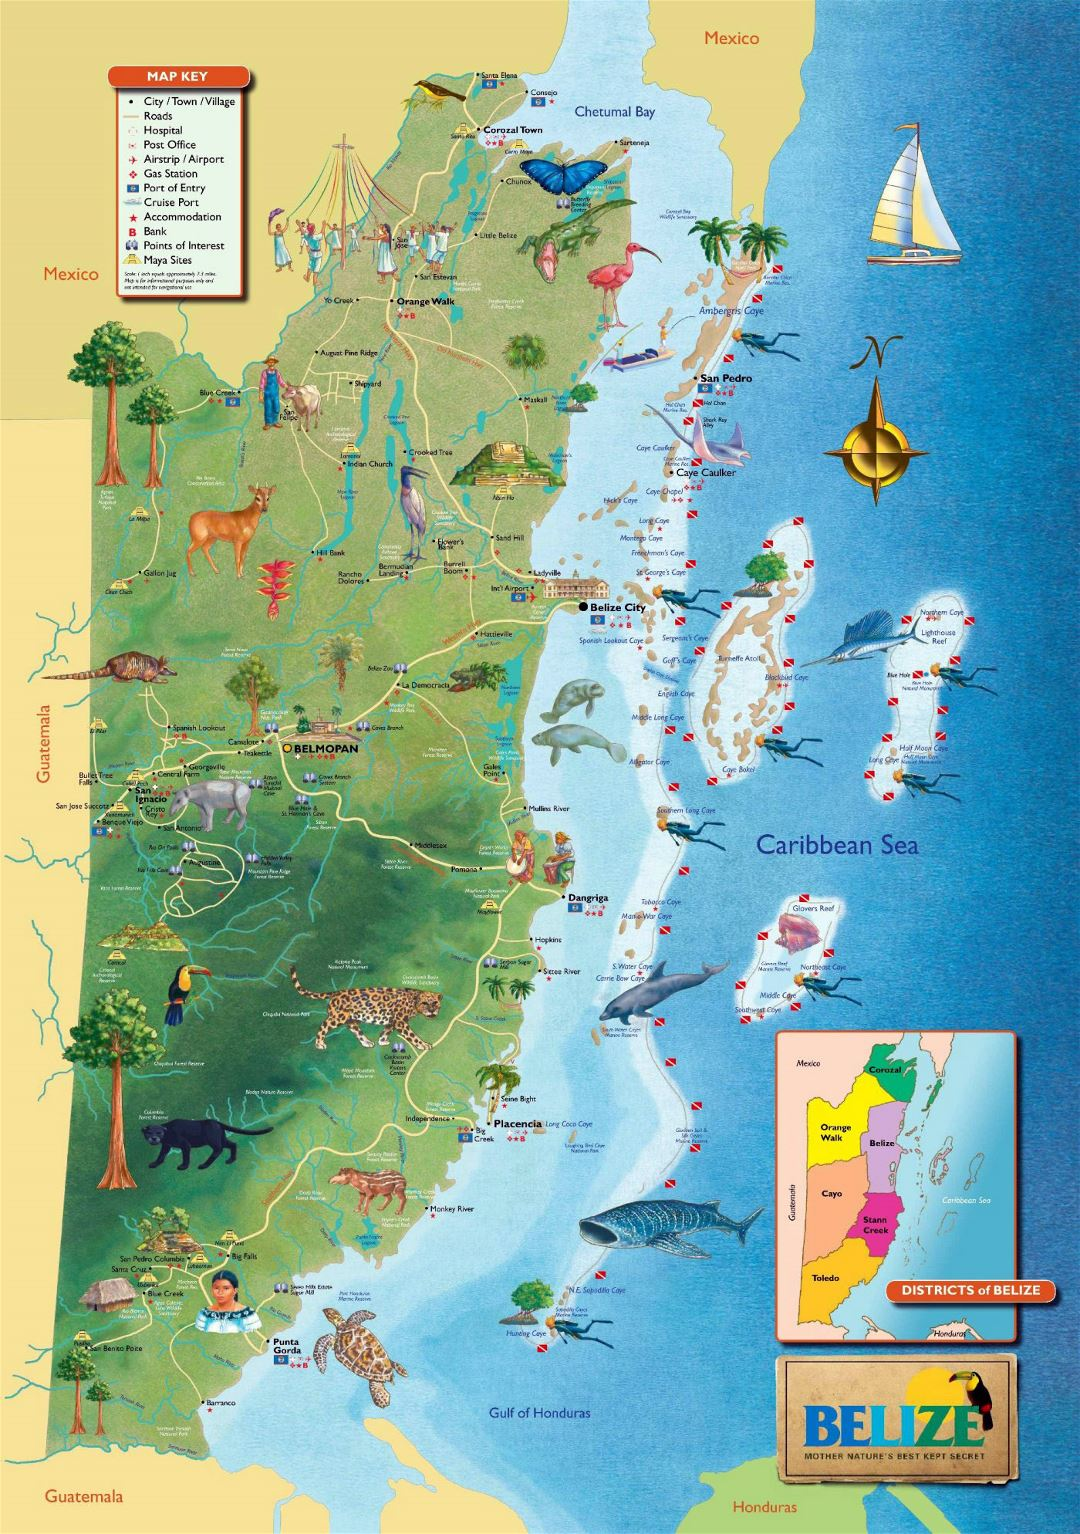 Large tourist map of Belize